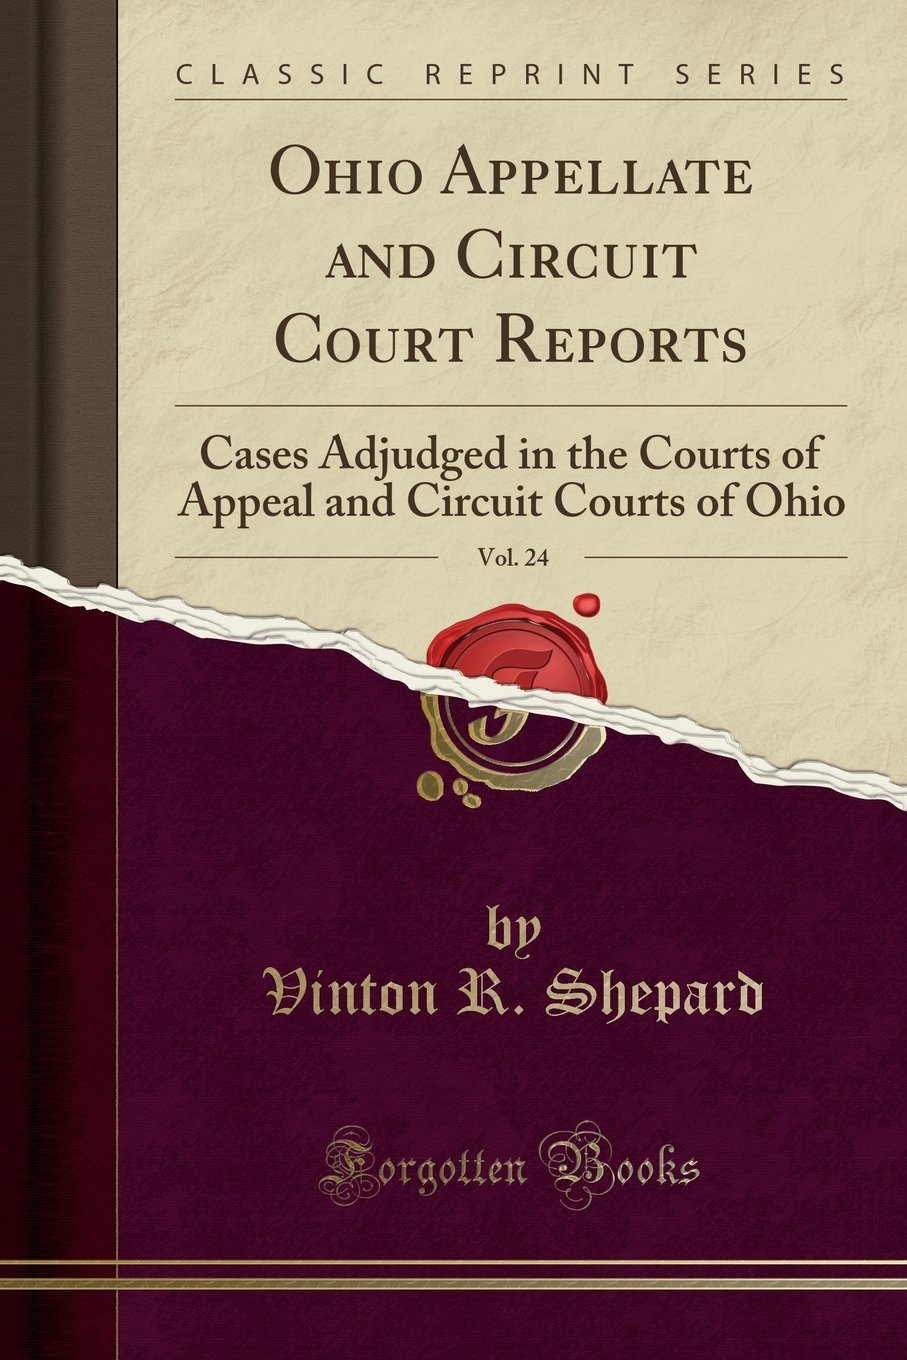 Ohio Appellate and Circuit Court Reports, Vol. 24: Cases Adjudged in the Courts of Appeal and Circuit Courts of Ohio (Classic Reprint) ebook